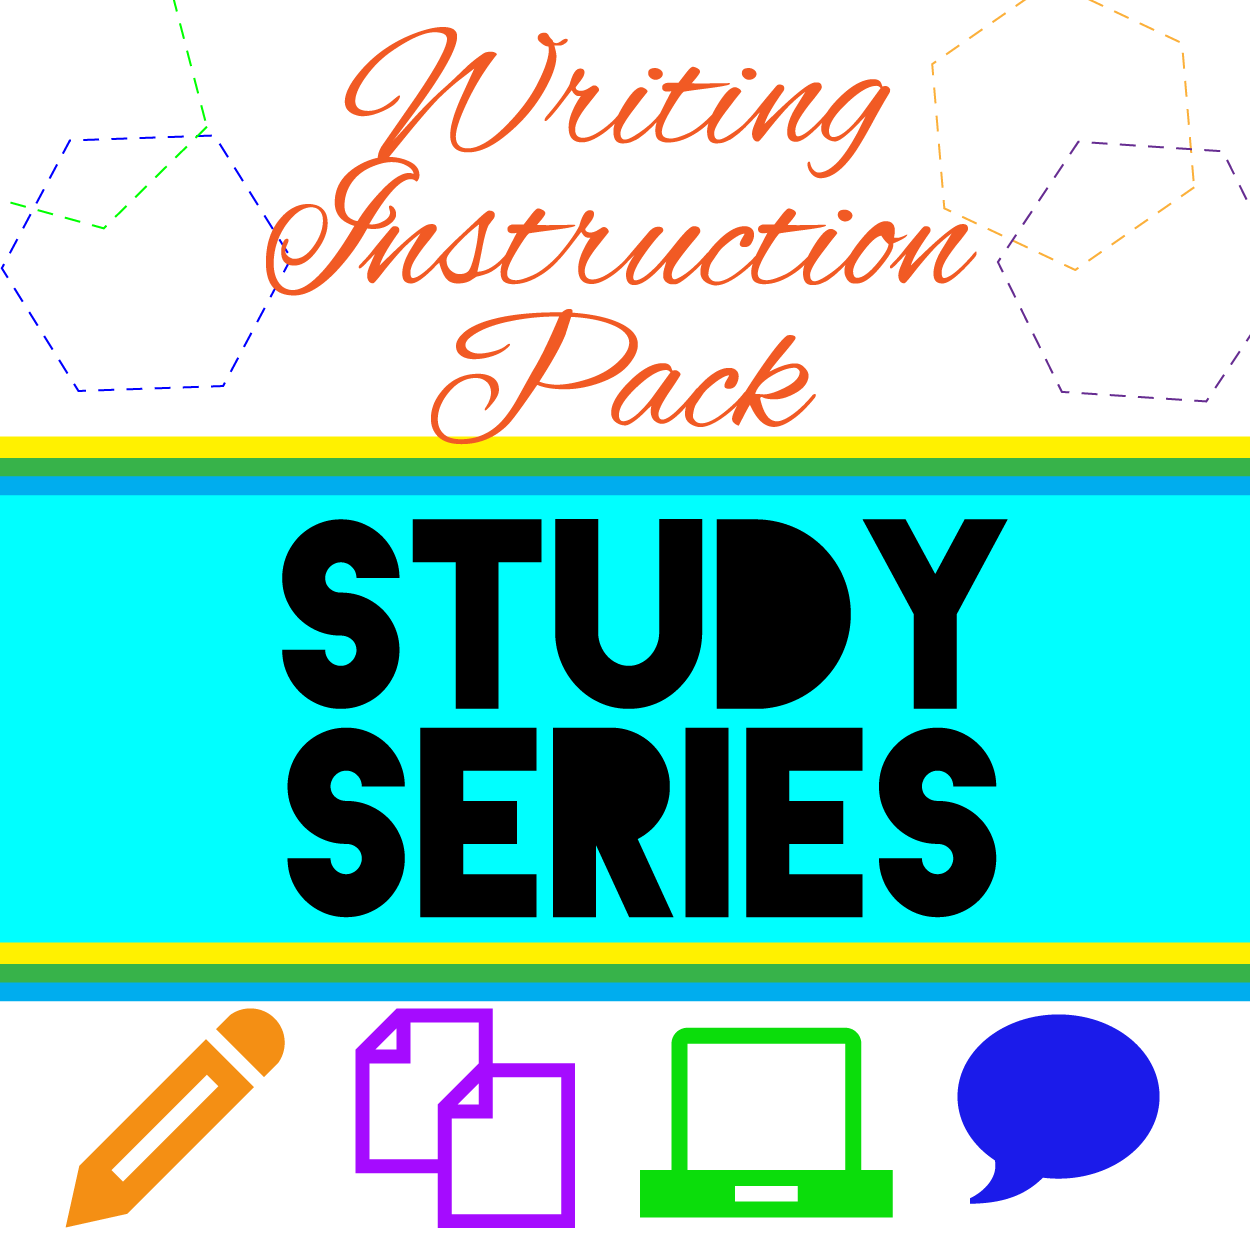 Writing Instruction Study Series Pack – Special Focus on Teaching Student Writers